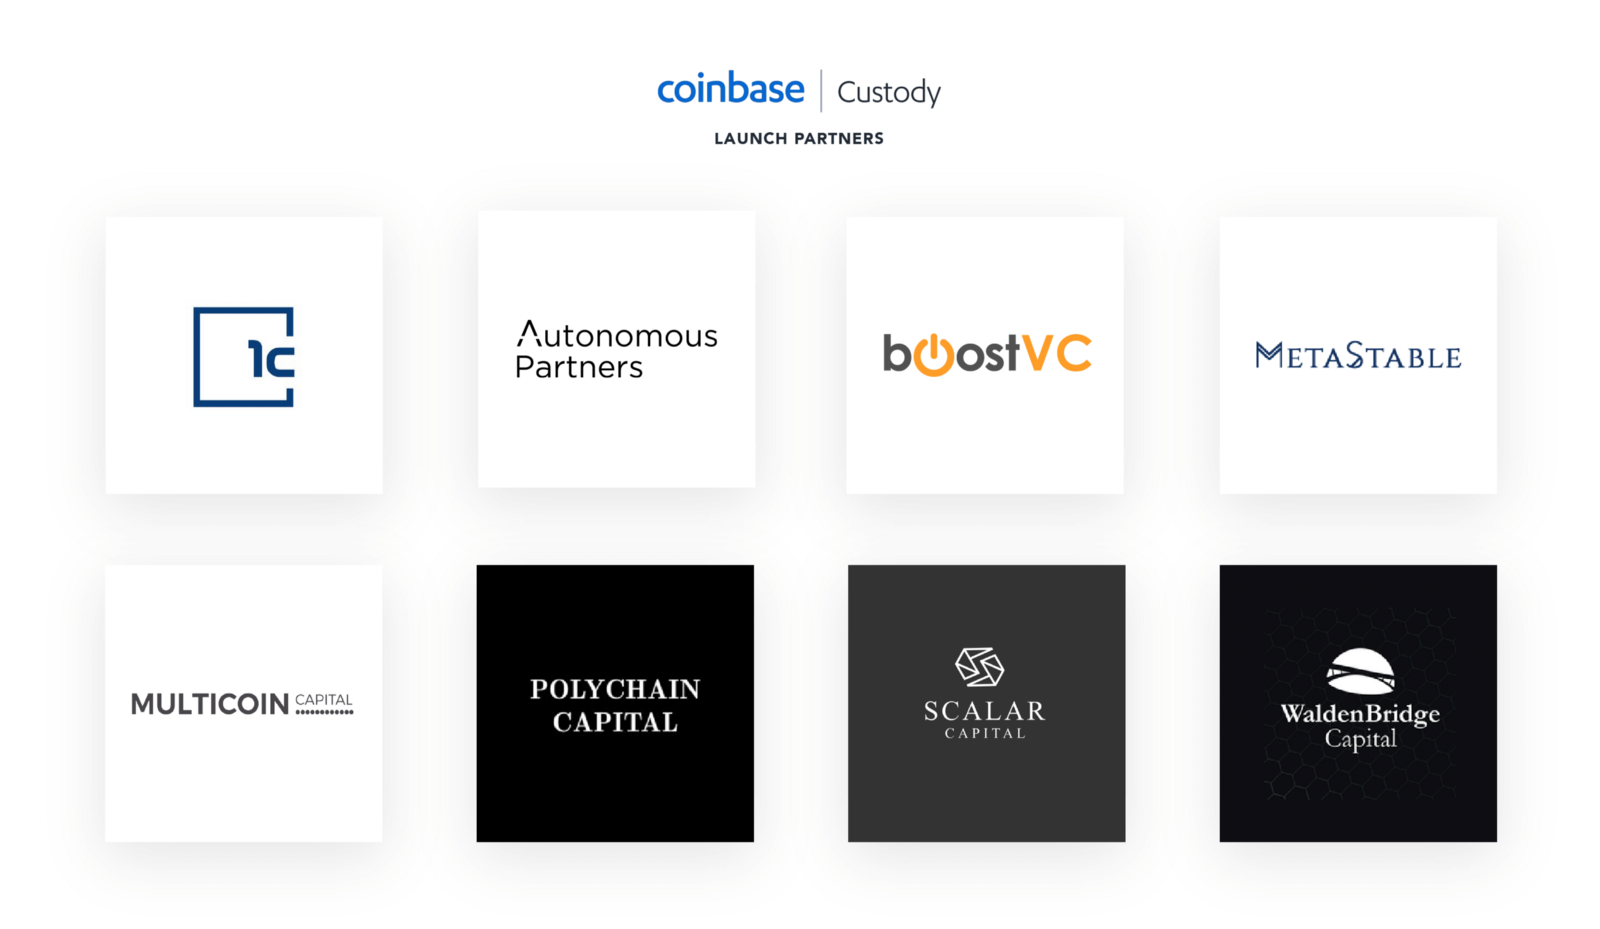 Some of the Coinbase Custody launch partners